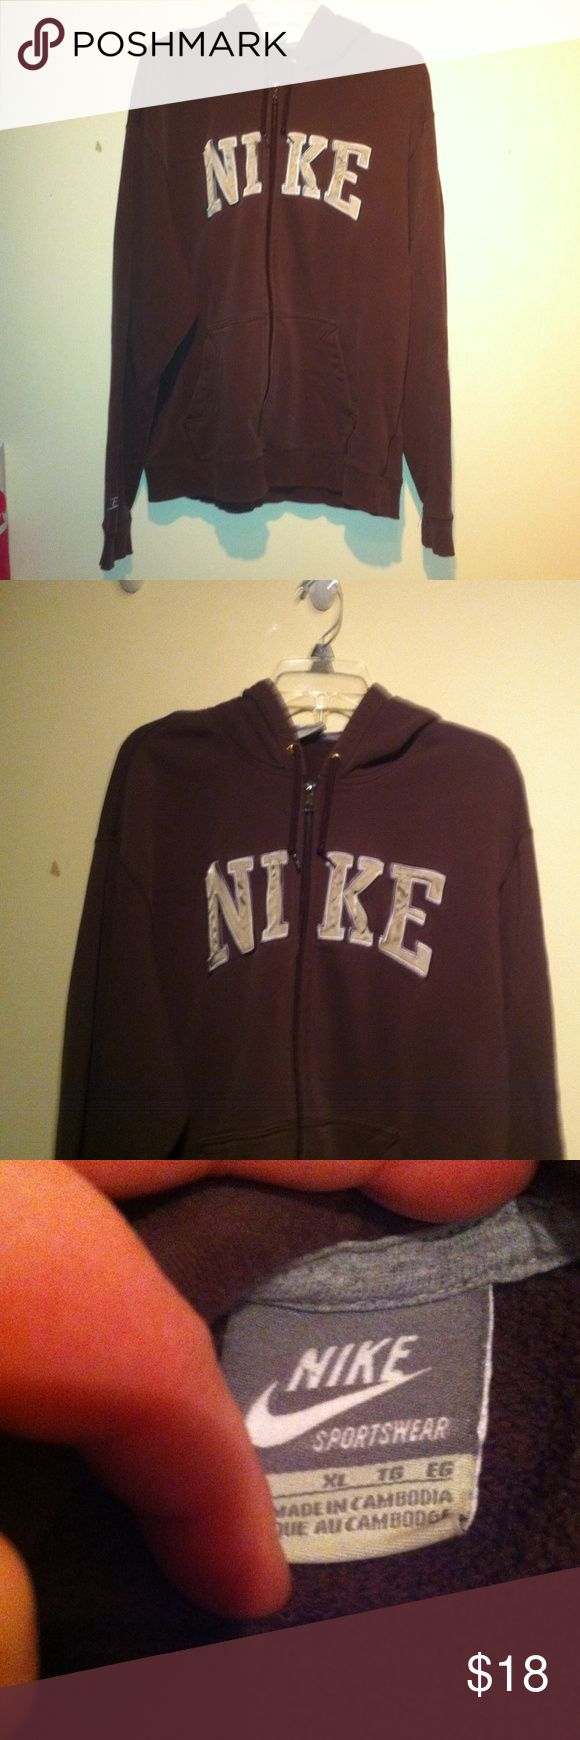 XL men's NIKE brown zip up hooded sweatshirt Men's XL Nike hooded sweatshirt, zip up with front pockets and comfy. It's in great used condition with no holes , rips , or stains . Just alittle bit faded but otherwise excellent condition. It's brown in color and tan and white Nike print across top and nice big front pockets! ; ) authentic and 79% cotton &21% polyester. Zipper works great as well and no loose threads or issues. Great gift! ; ) Nike Shirts Sweatshirts & Hoodies